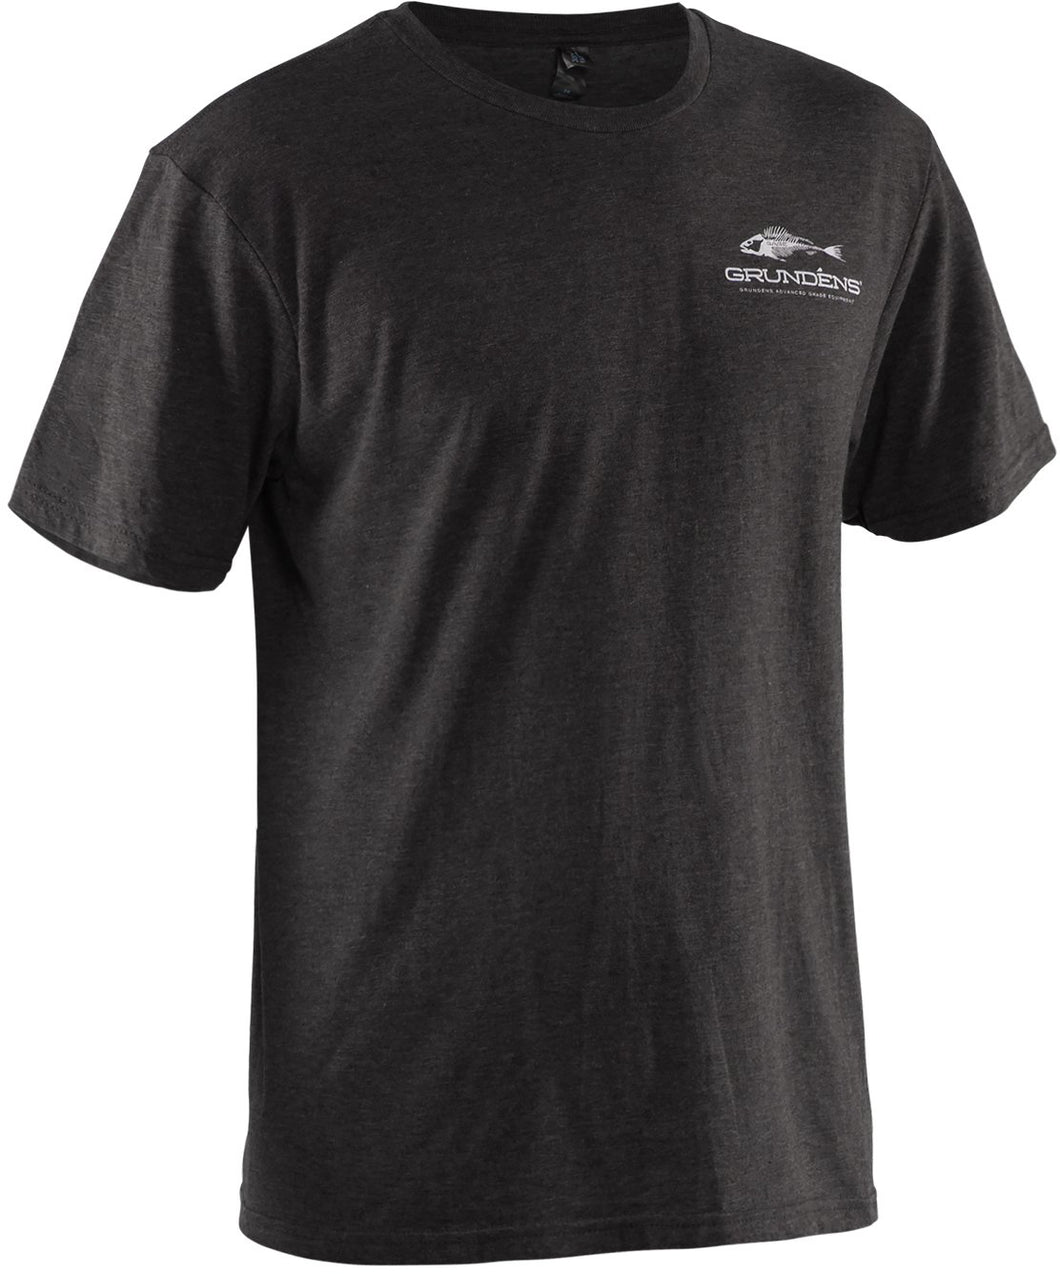 Outdoor T-Shirt in Heather Charcoal color